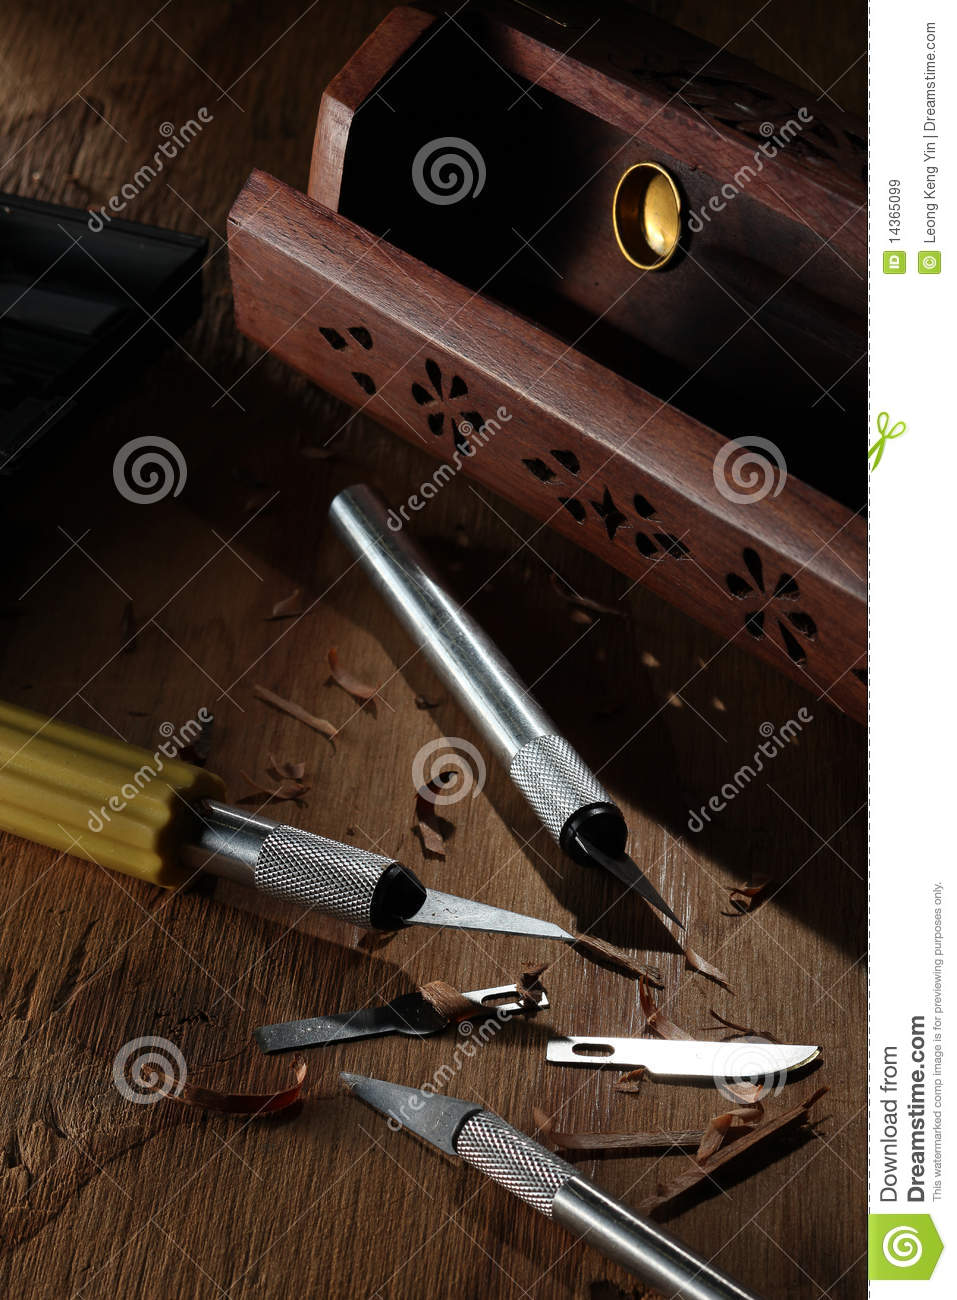 utility knives and tool box royalty free stock images image 14365099. Black Bedroom Furniture Sets. Home Design Ideas